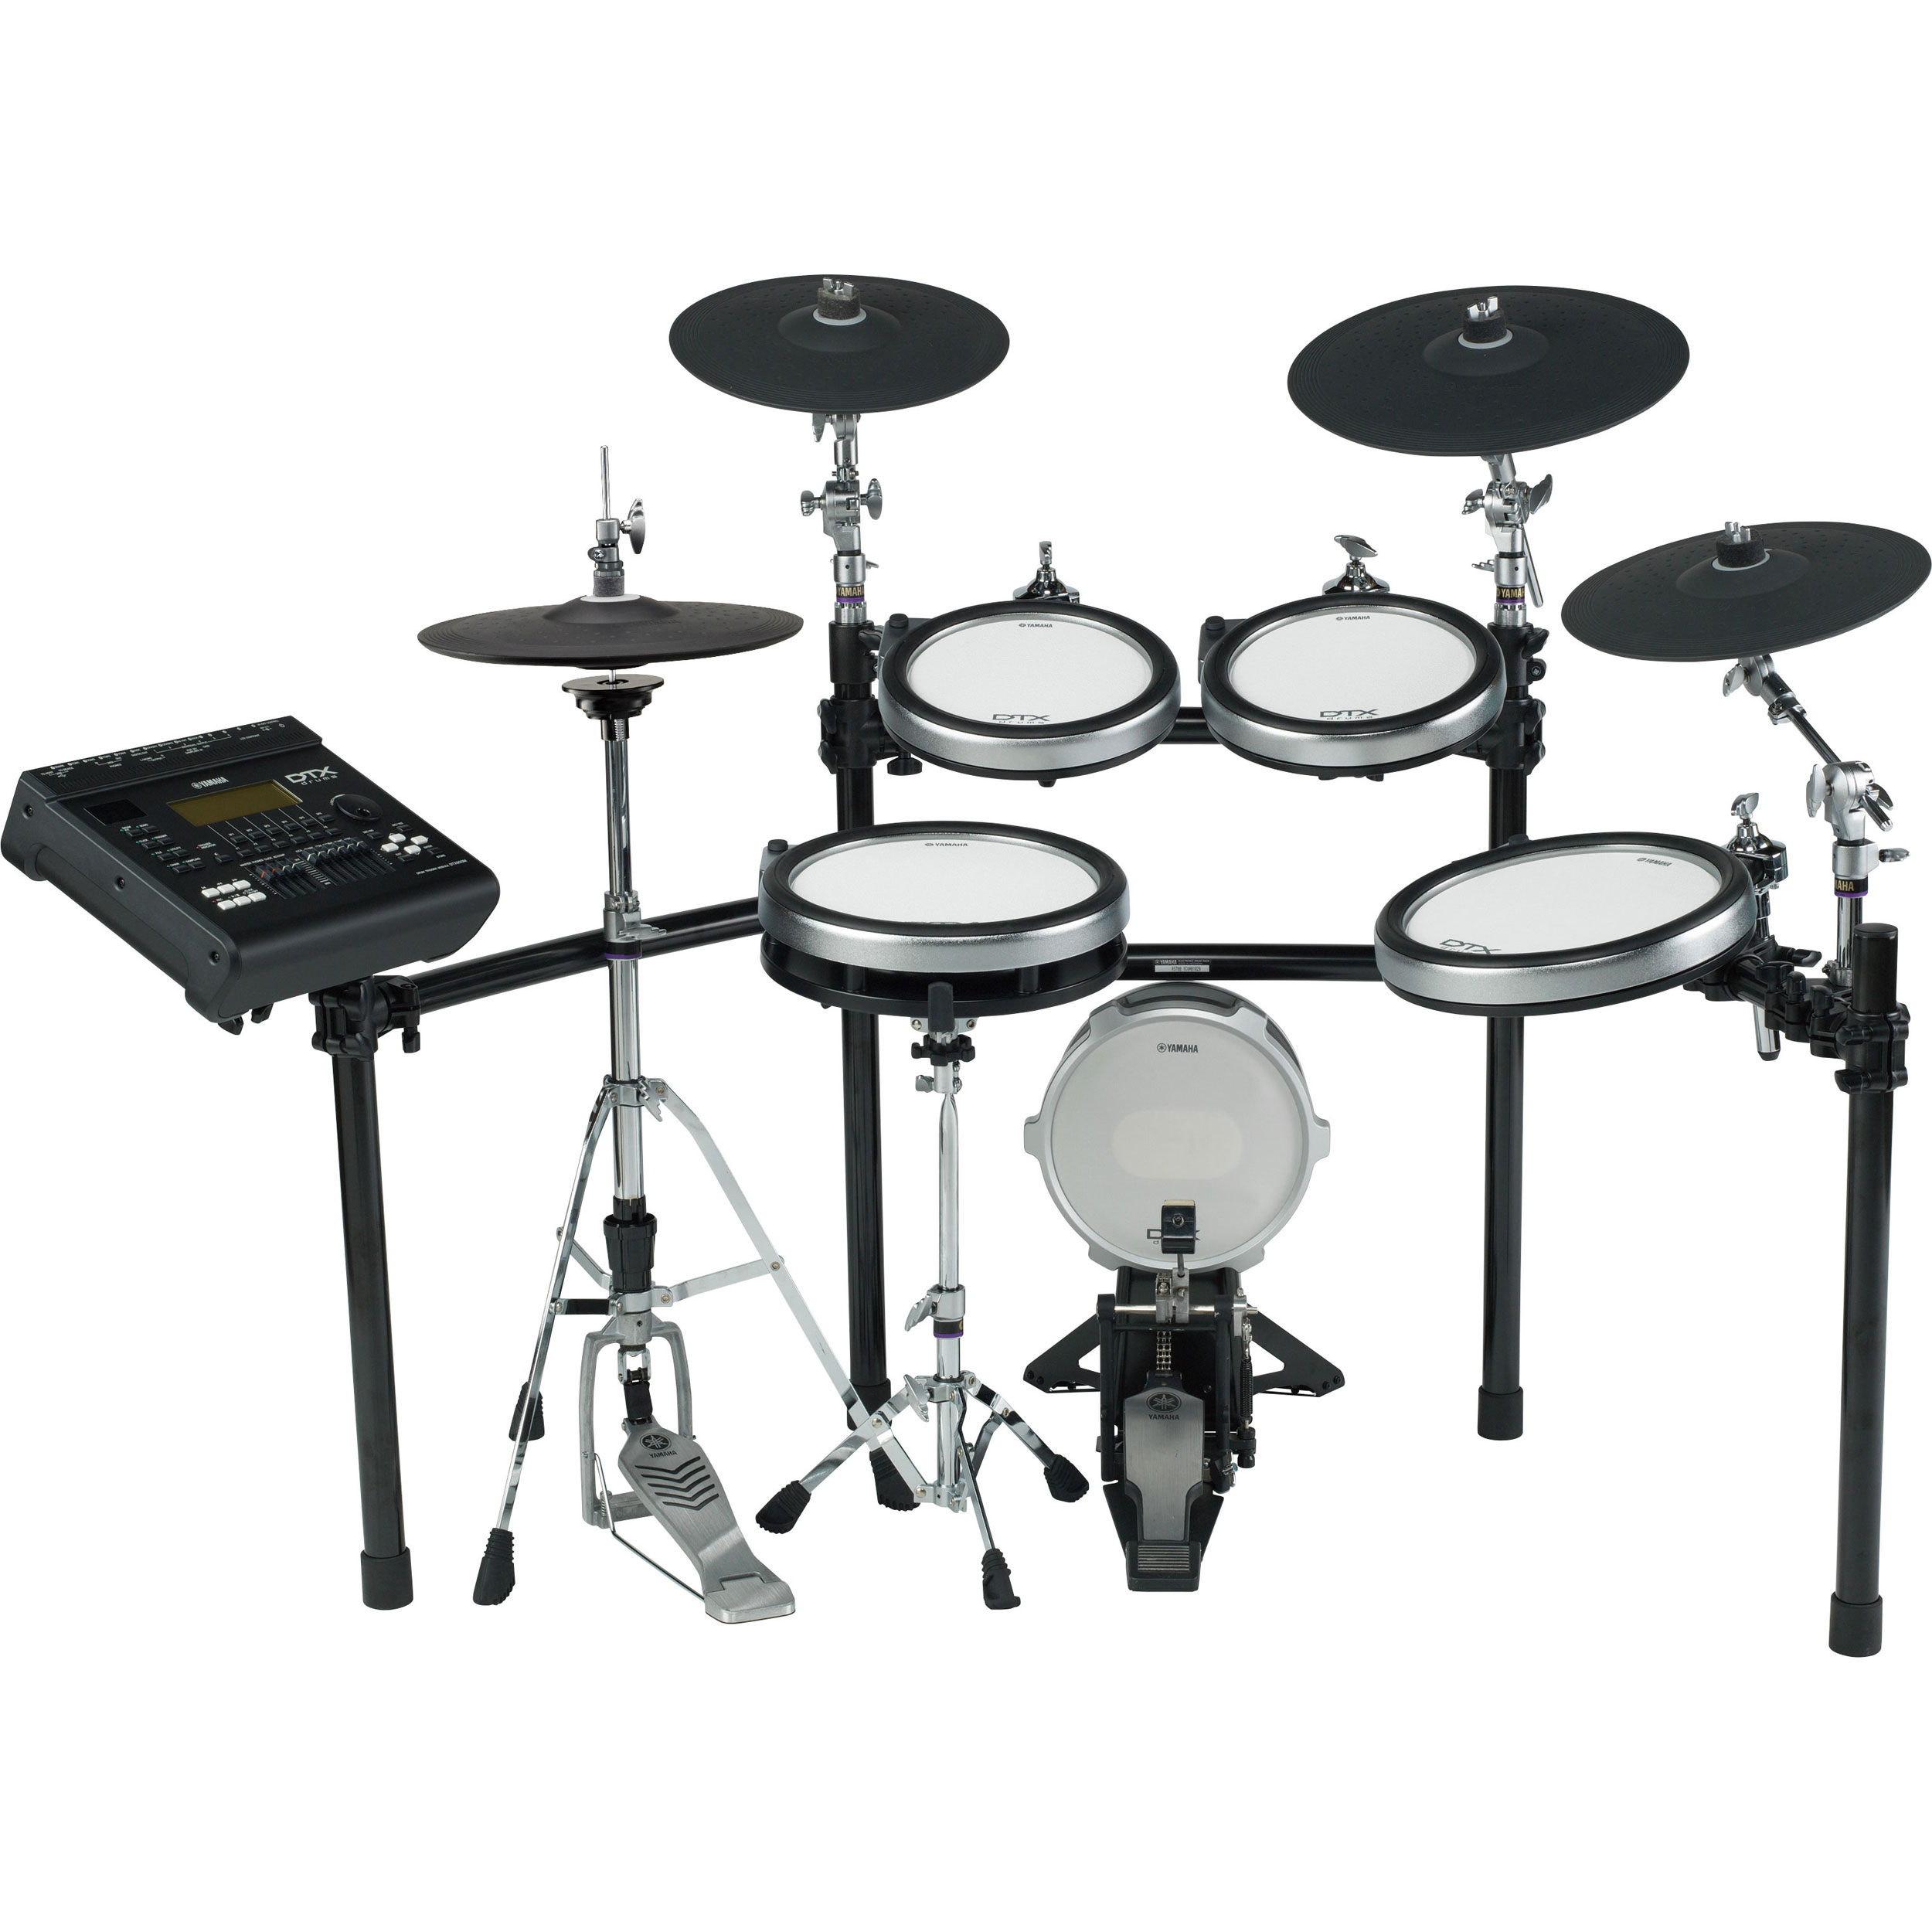 Yamaha DTX920K Electronic Drum Set